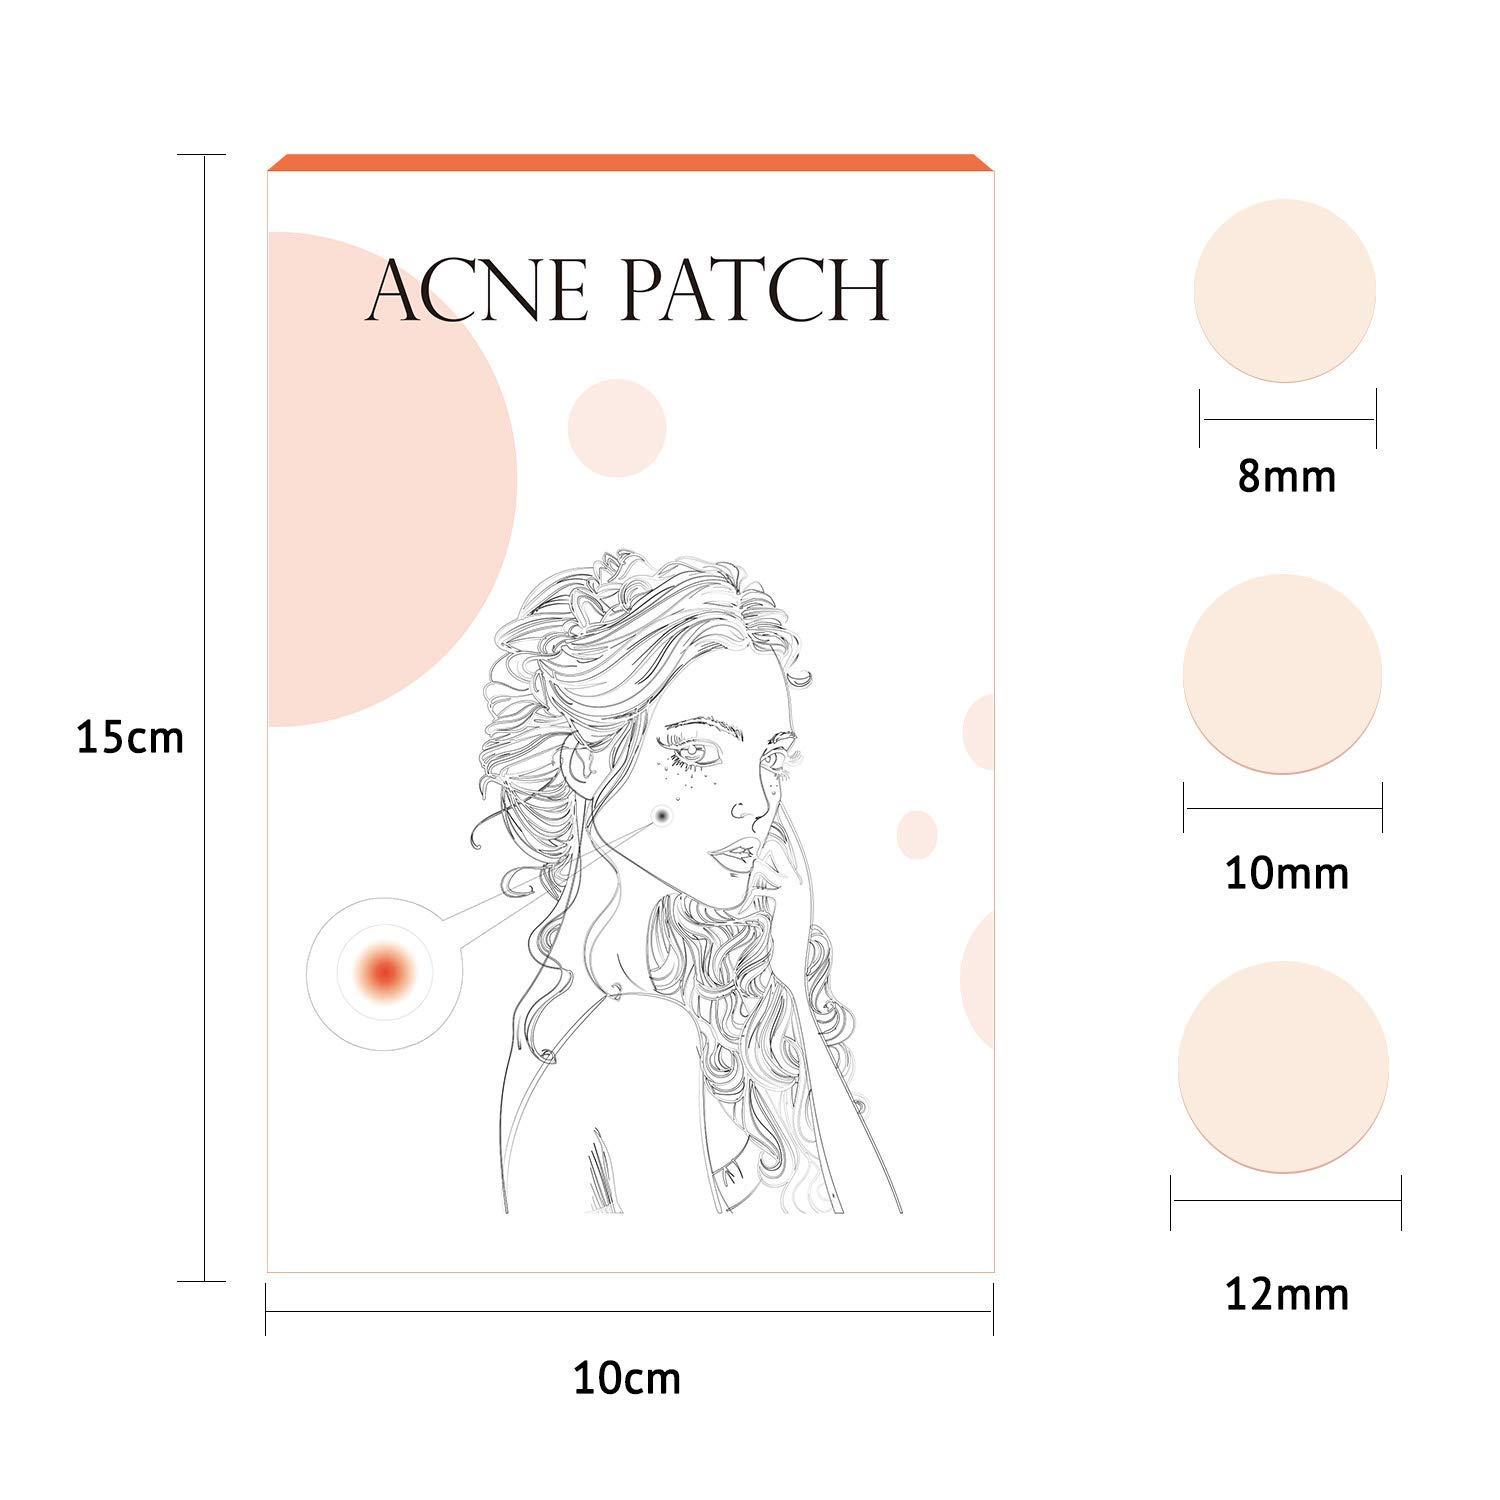 Acne Pimple Healing Patch Hydrocolloid Acne Absorbing Spot Dot 5 Pack x 24 Count(Size 8mm, 10mm, 12mm)